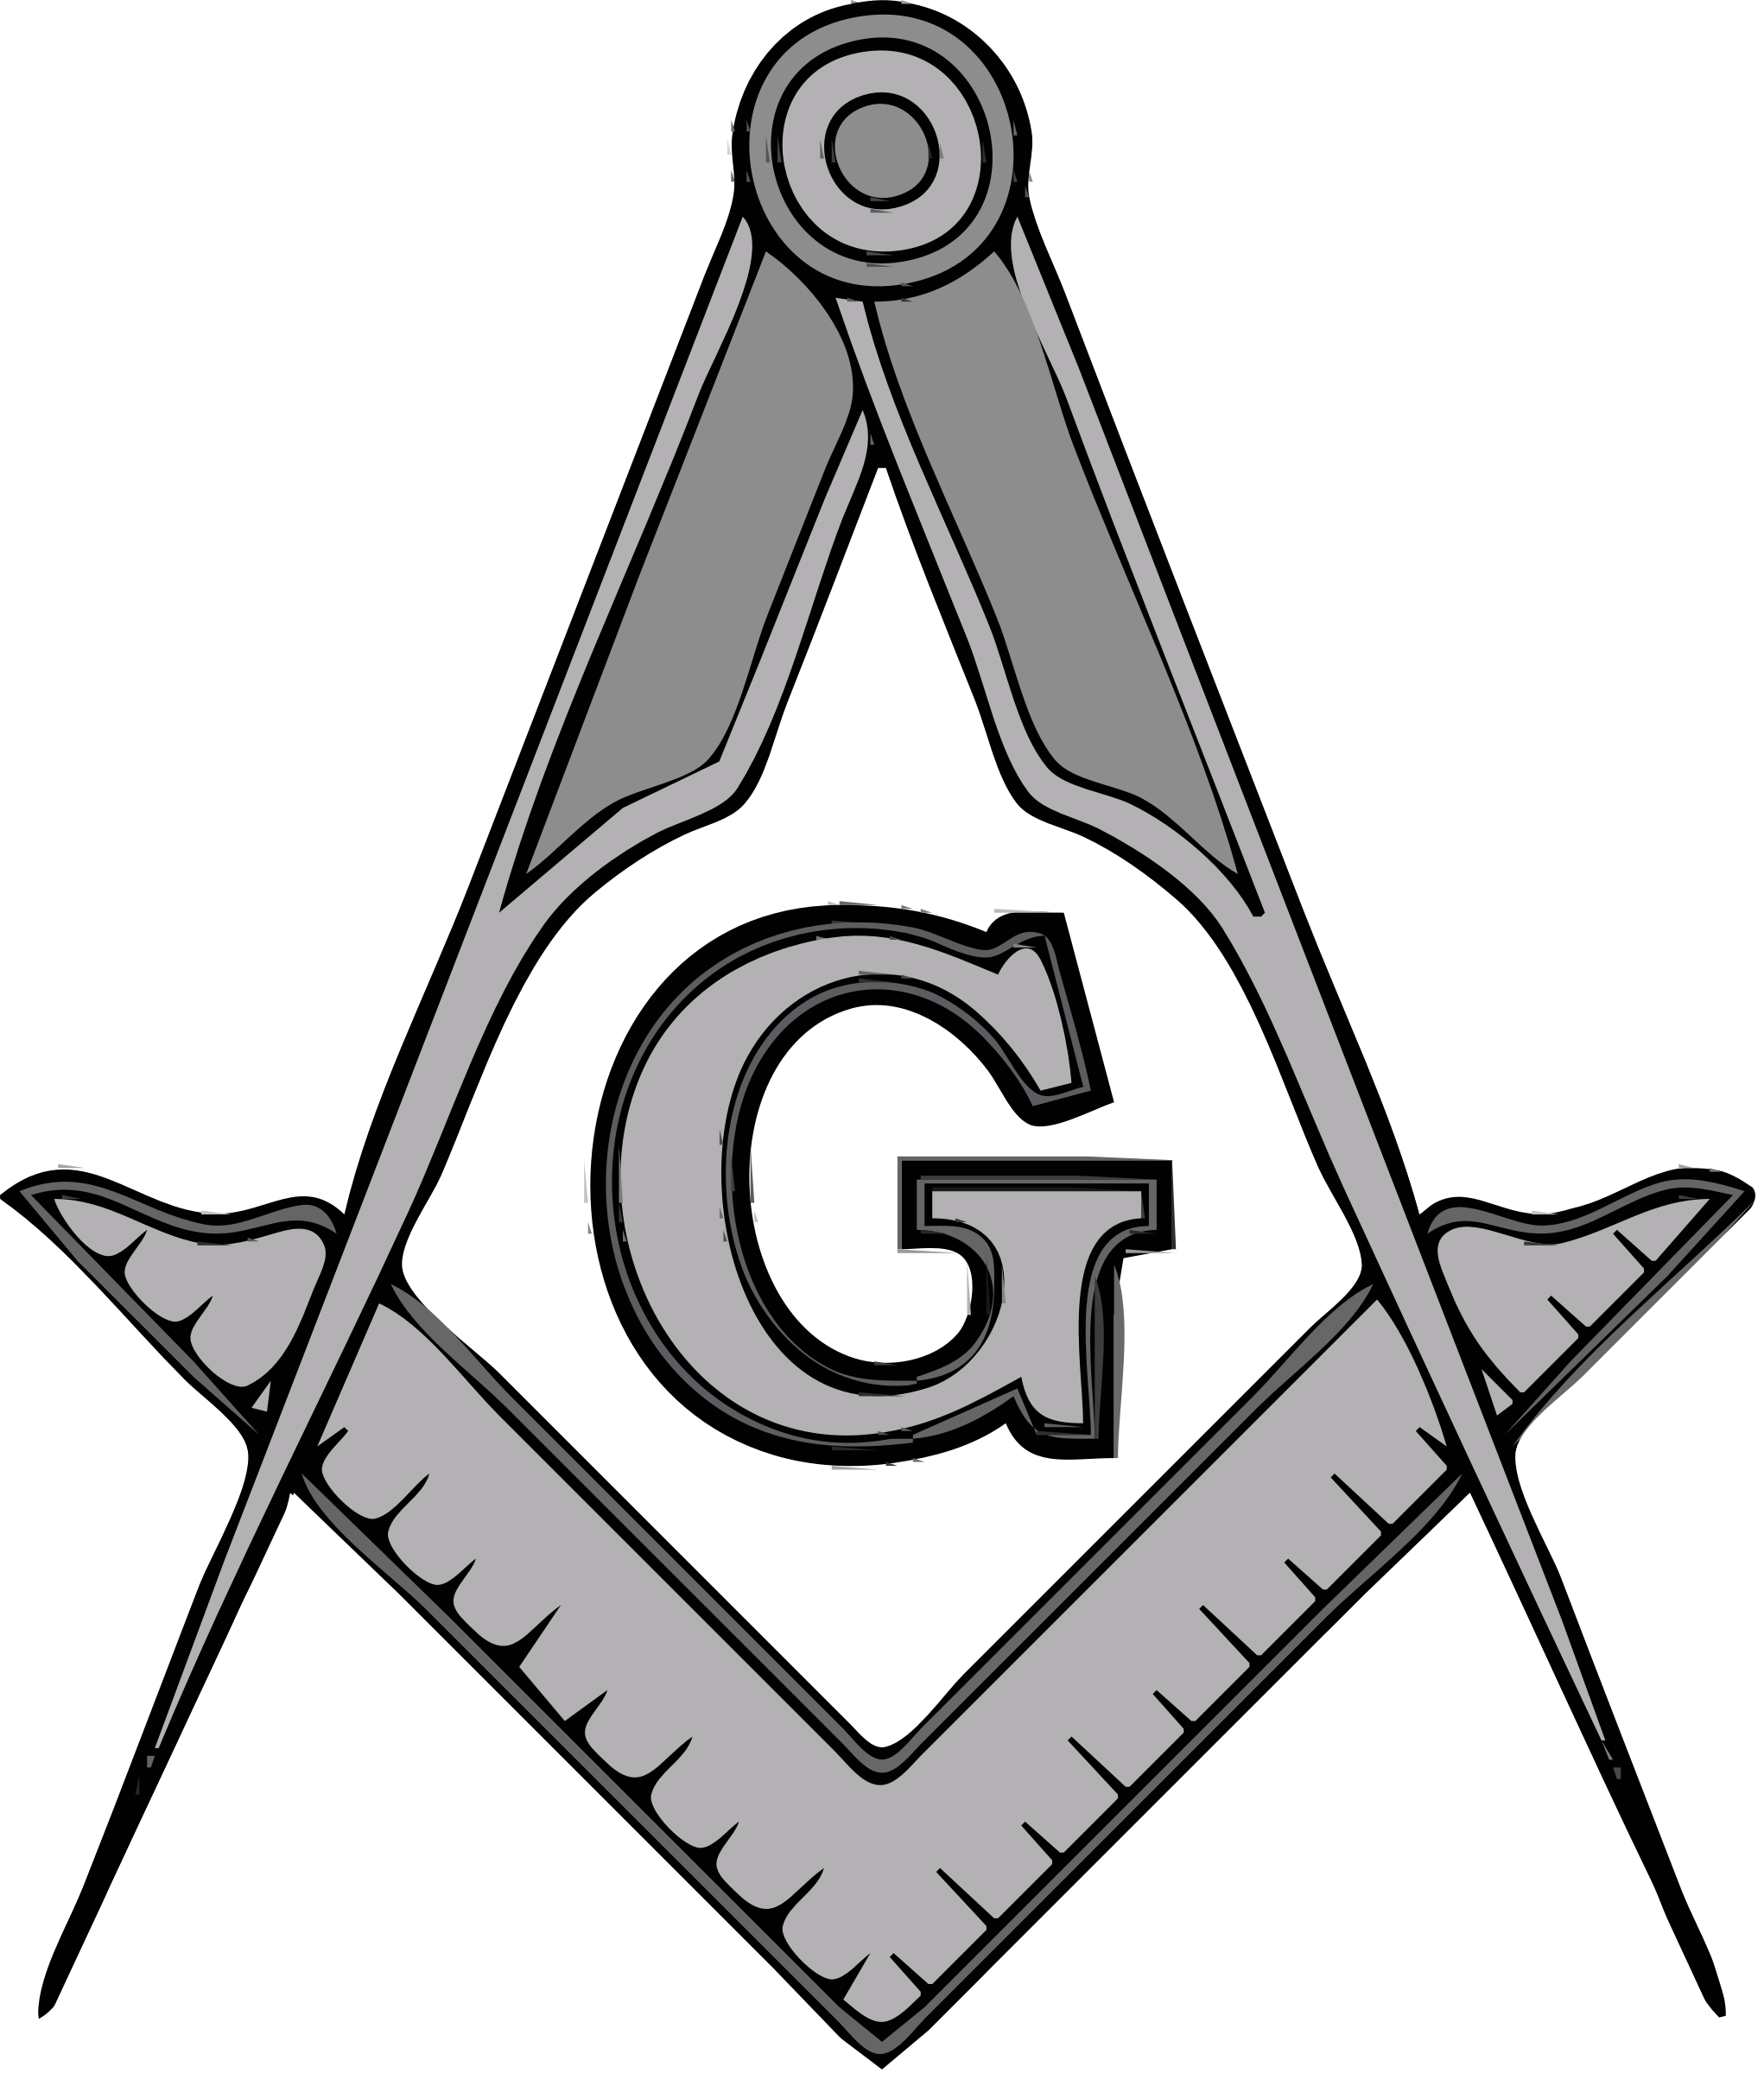 Freemasons, Freemasonry,  Masonic Blue Lodge Logo. by SacredMasonry